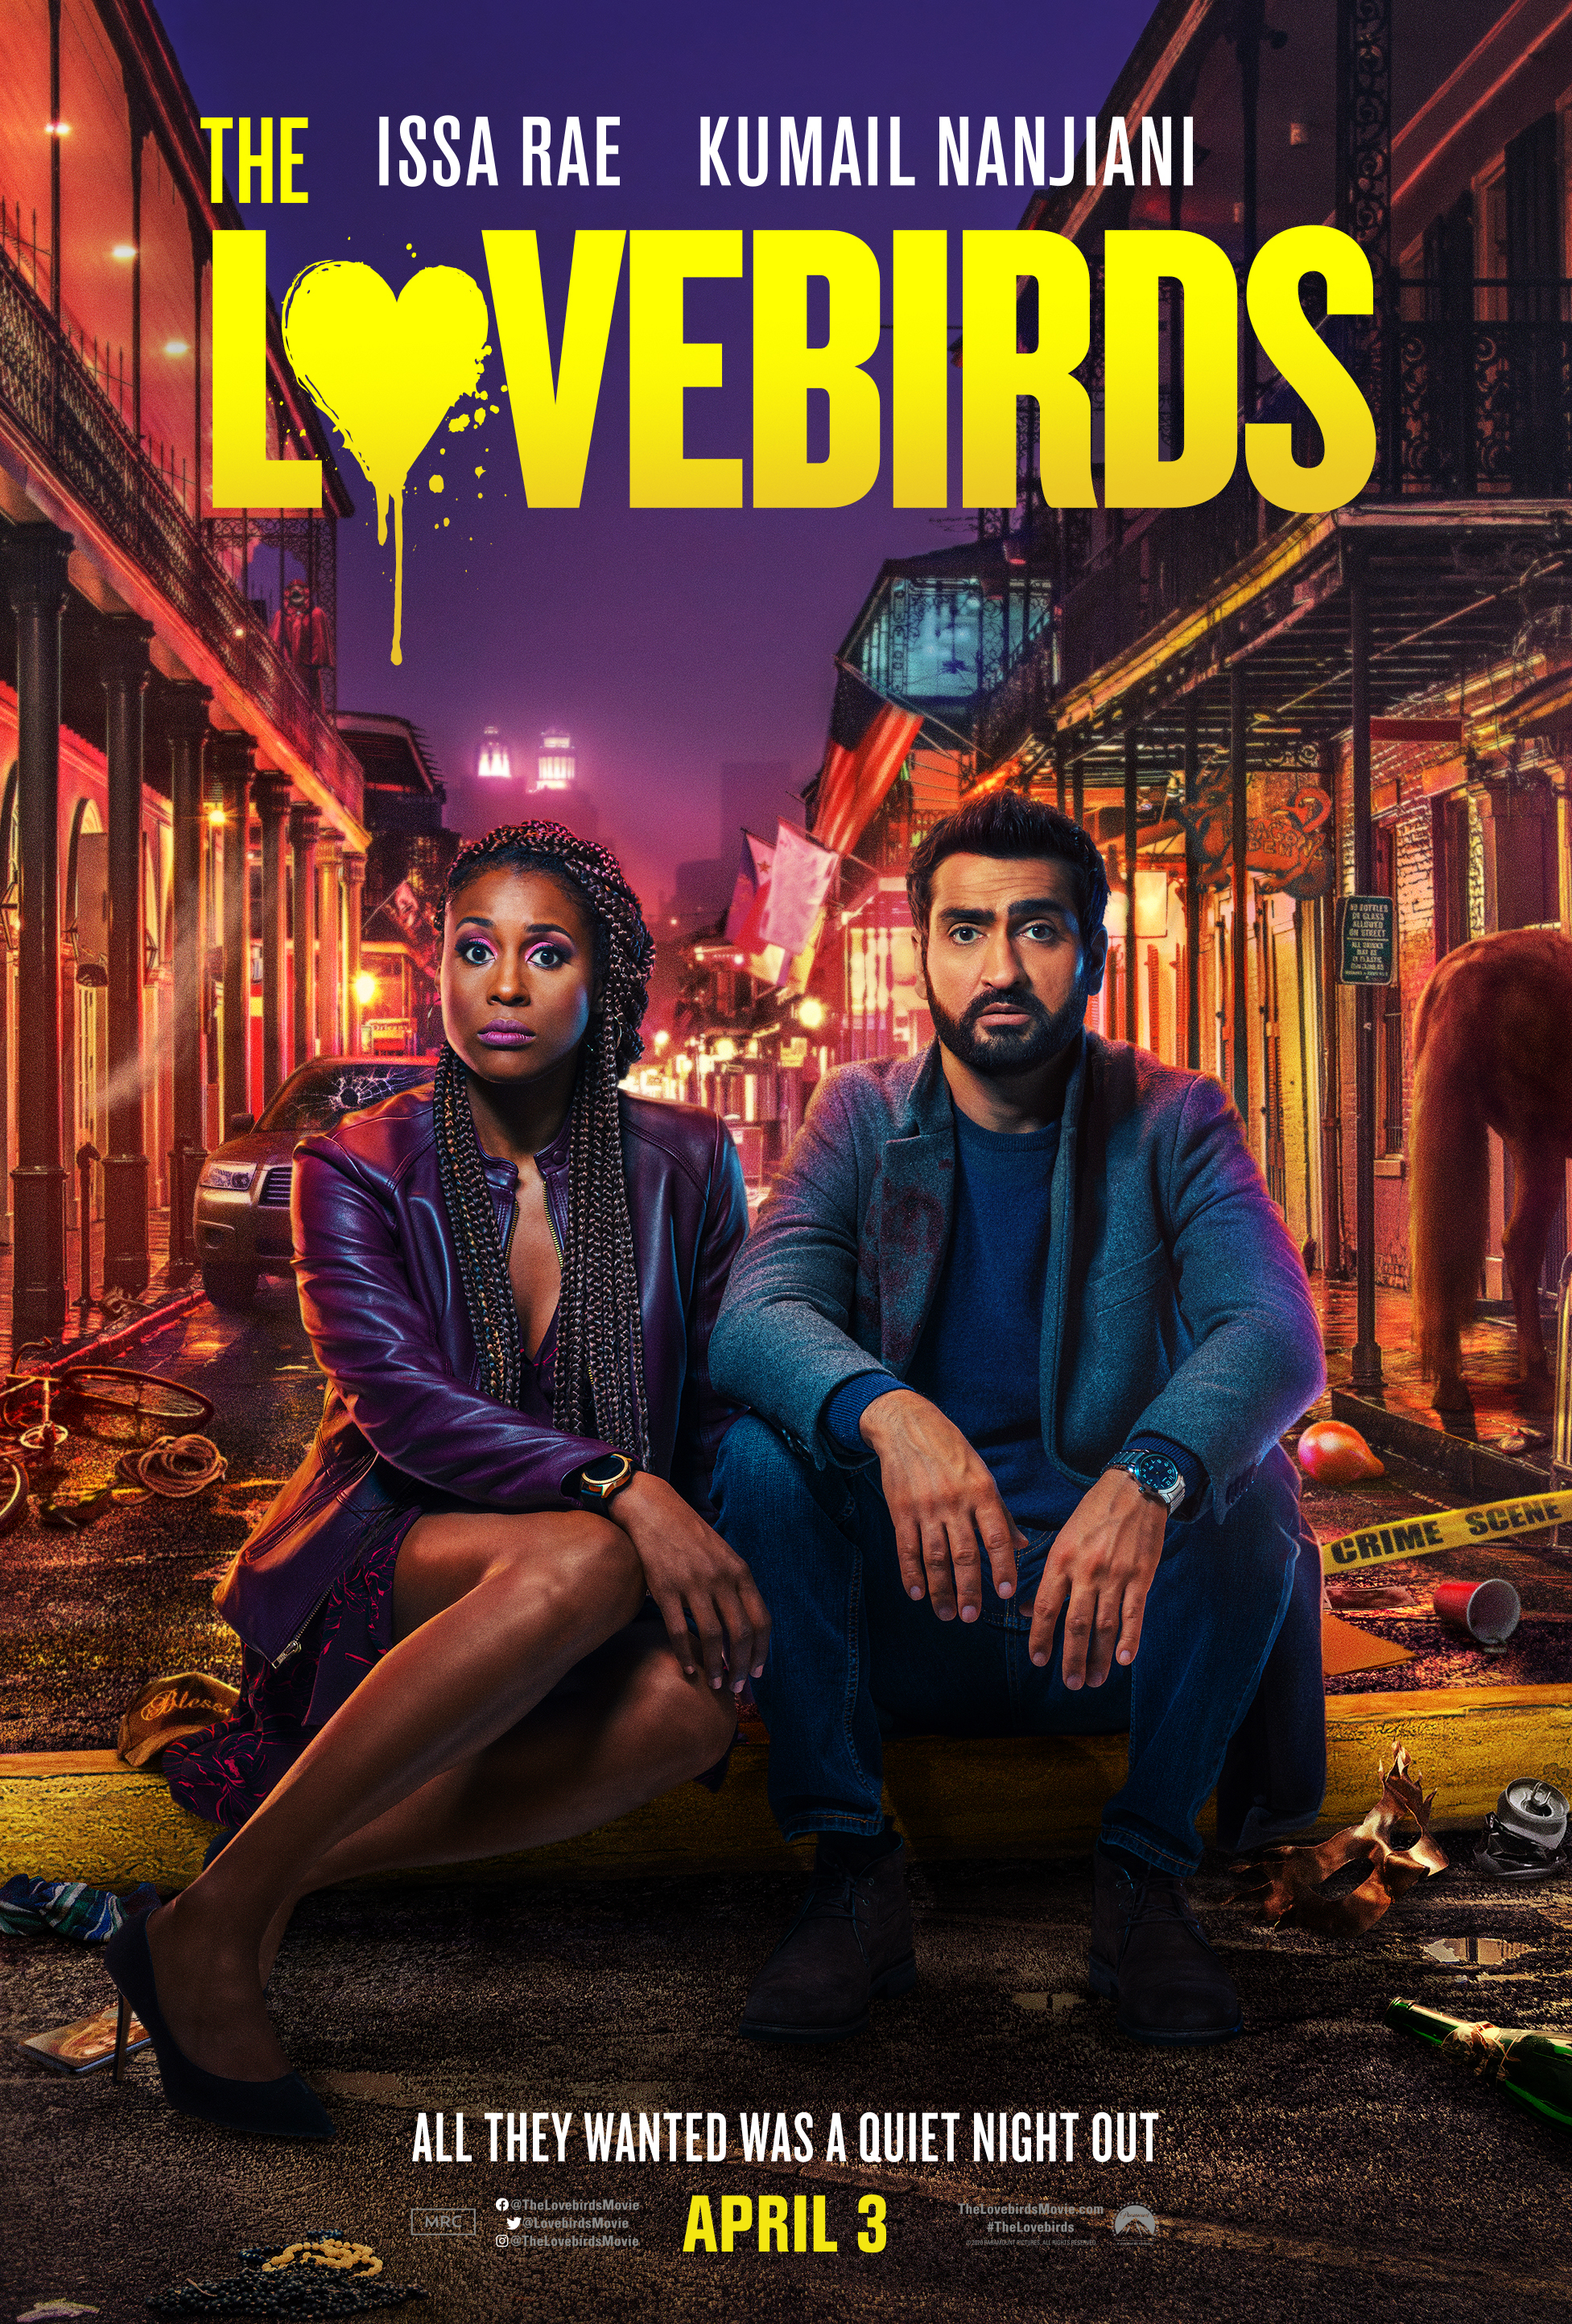 Paramount Pictures film 'The Lovebirds' stars Issa Rae and Kumail Nanjiani